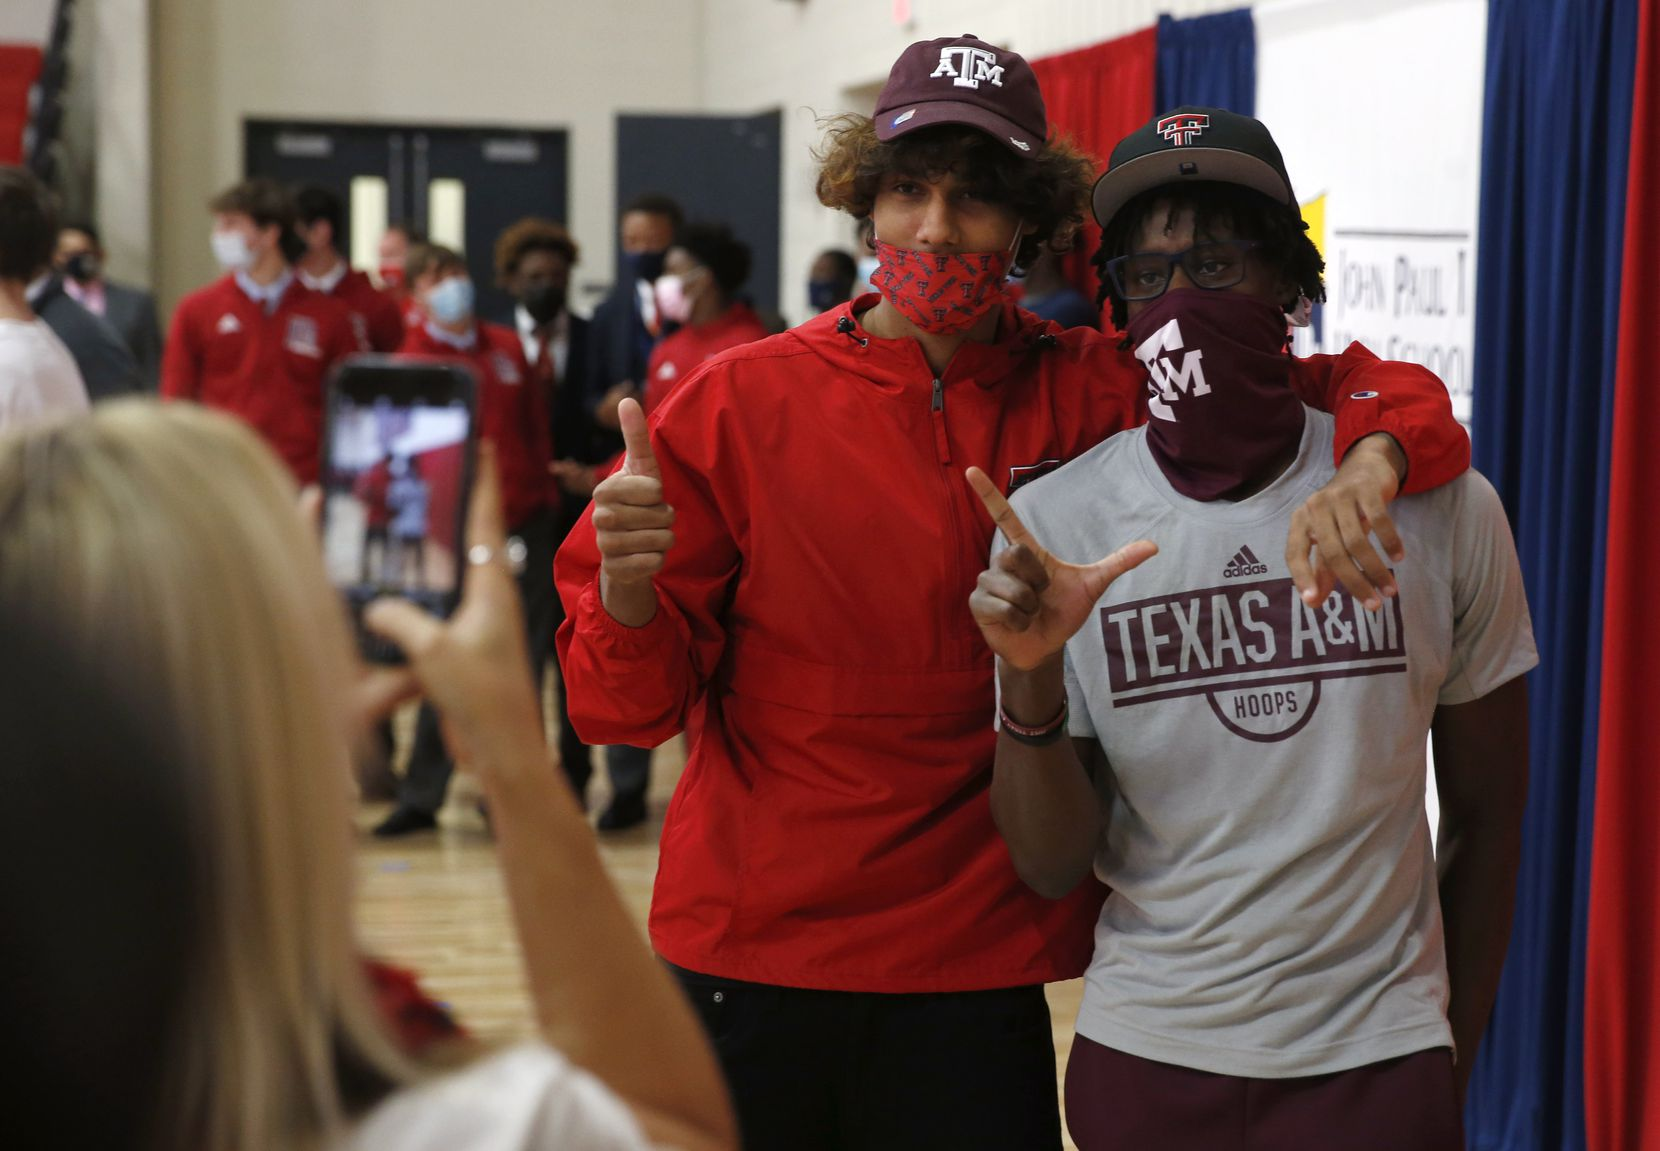 Sandra Brown takes a photo of her son, Jaylon Tyson (left) and his teammate Manny Obaseki after they signed their national letters of intent with Texas Tech University and Texas A&M University on National Signing Day at John Paul II High School on Wednesday, November 11, 2020 in Plano, Texas.